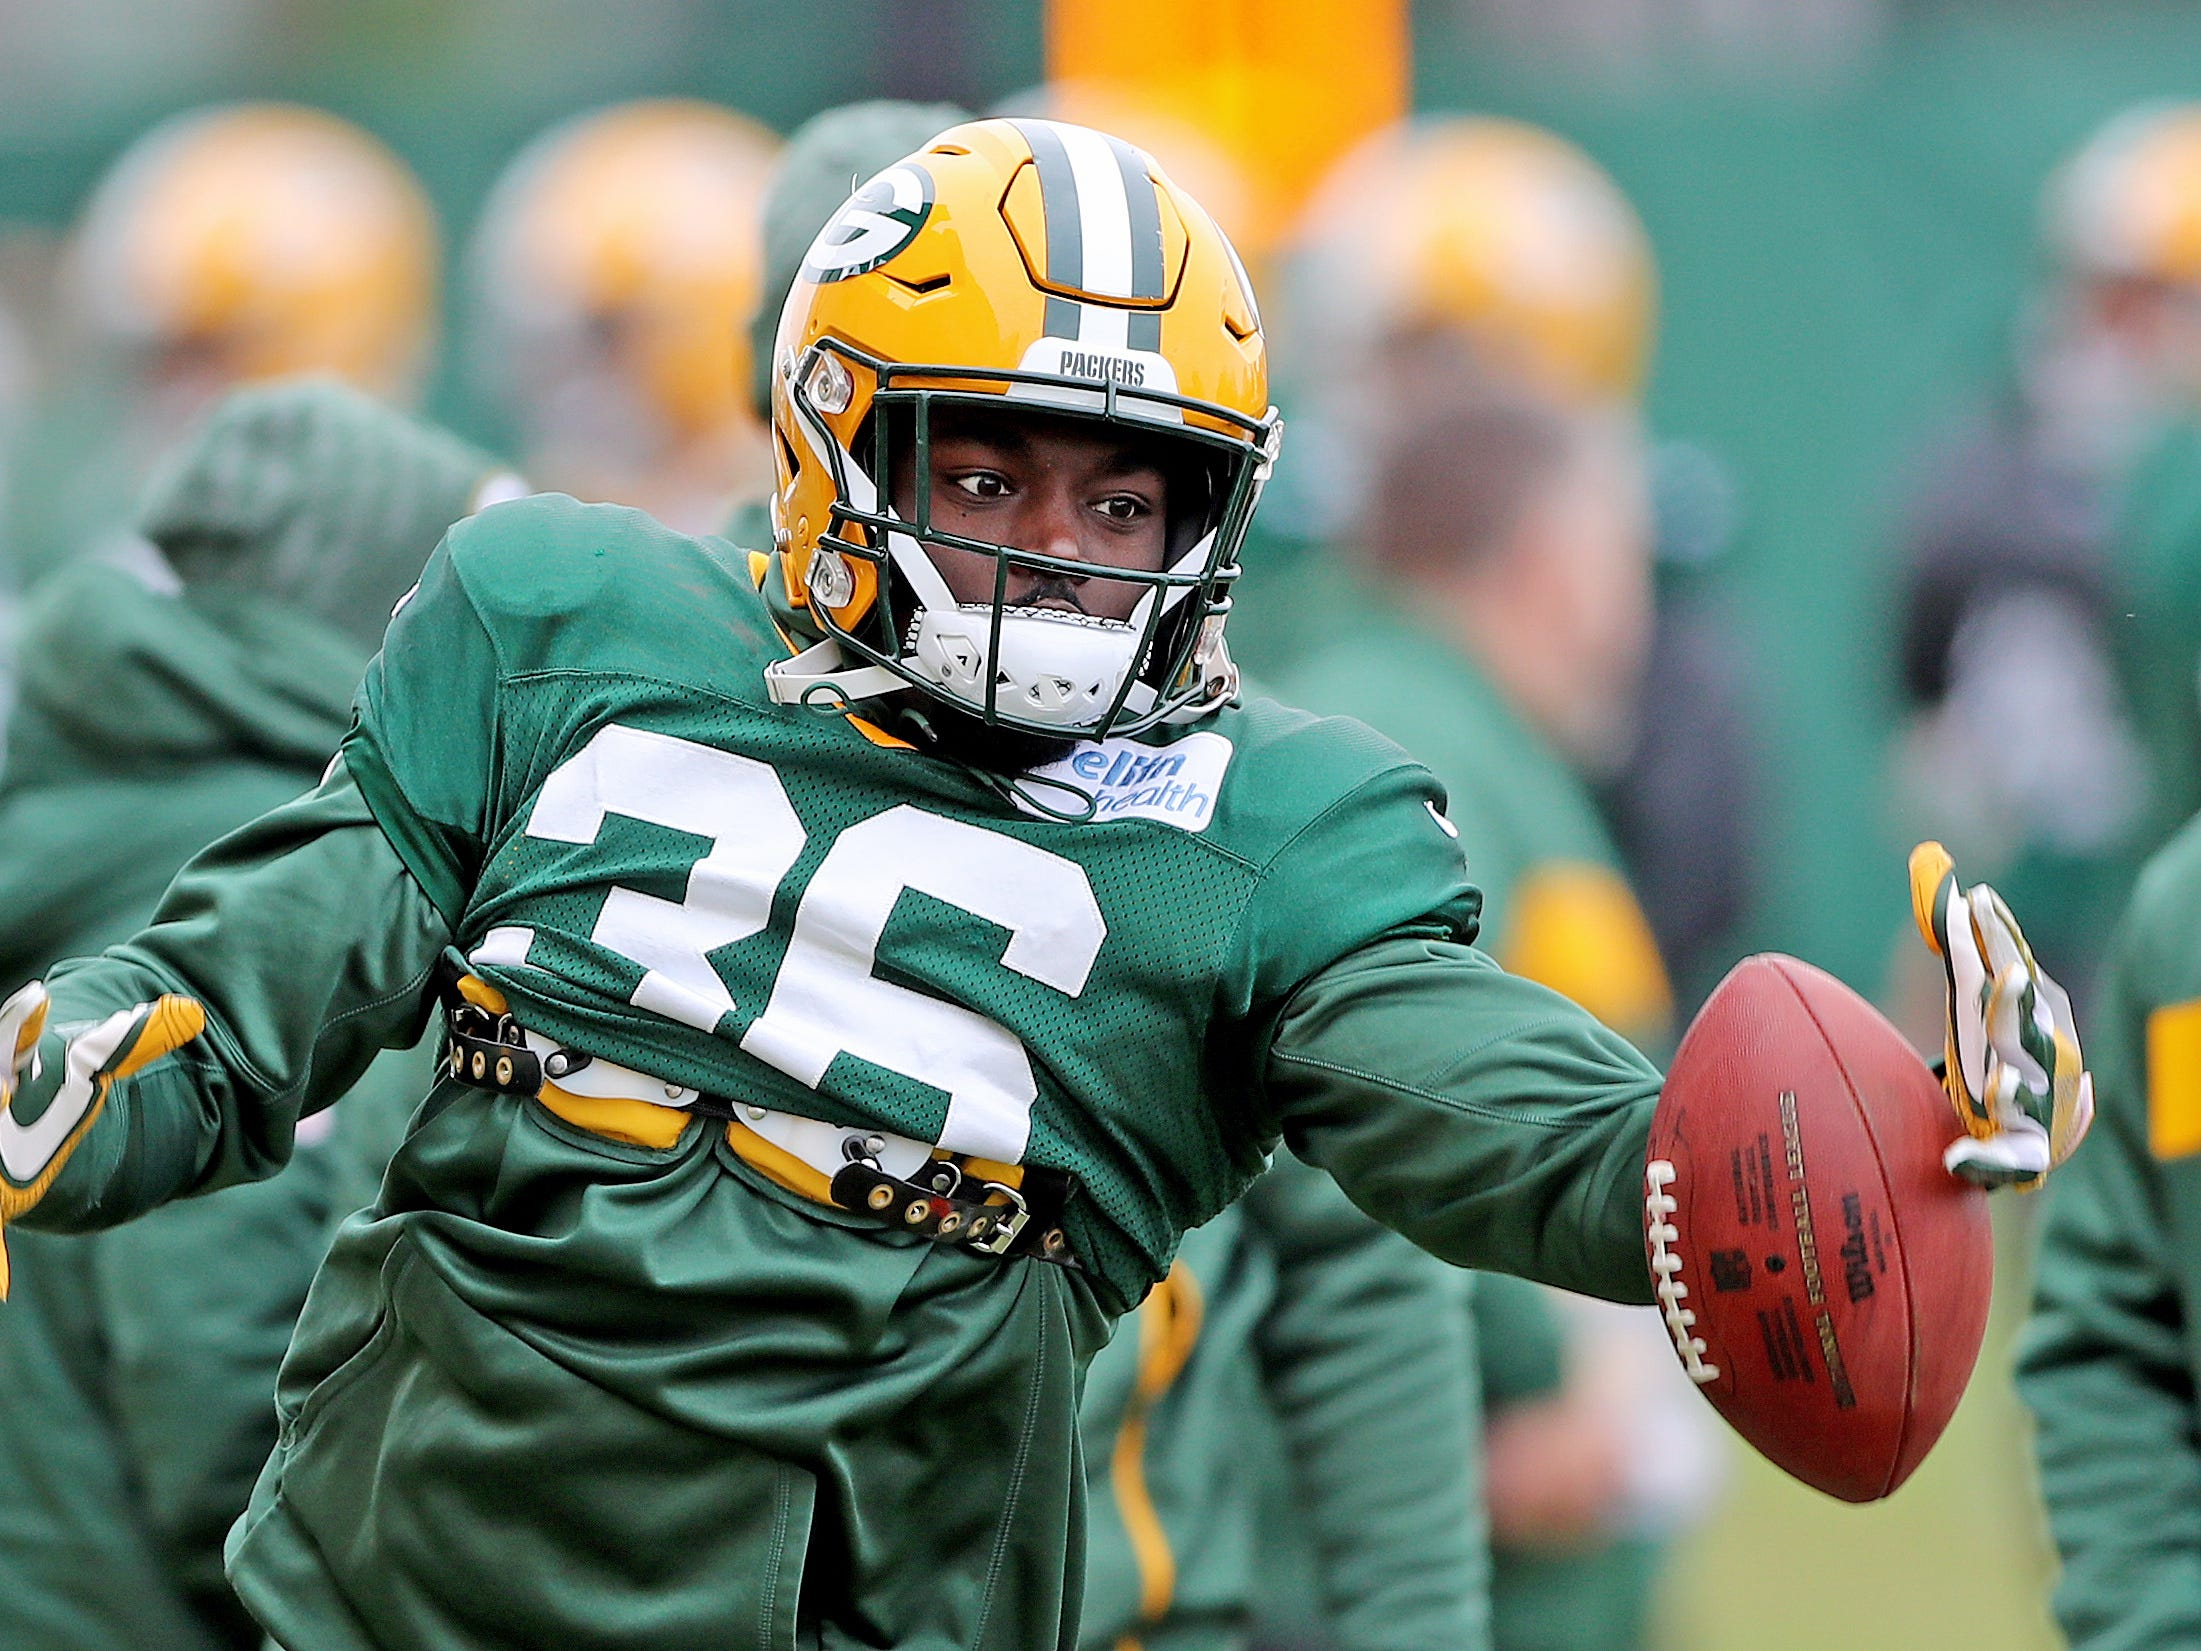 Green Bay Packers defensive back Raven Greene (36) during practice Thursday, November 8, 2018 at the Don Hutson Center in Ashwaubenon, Wis.